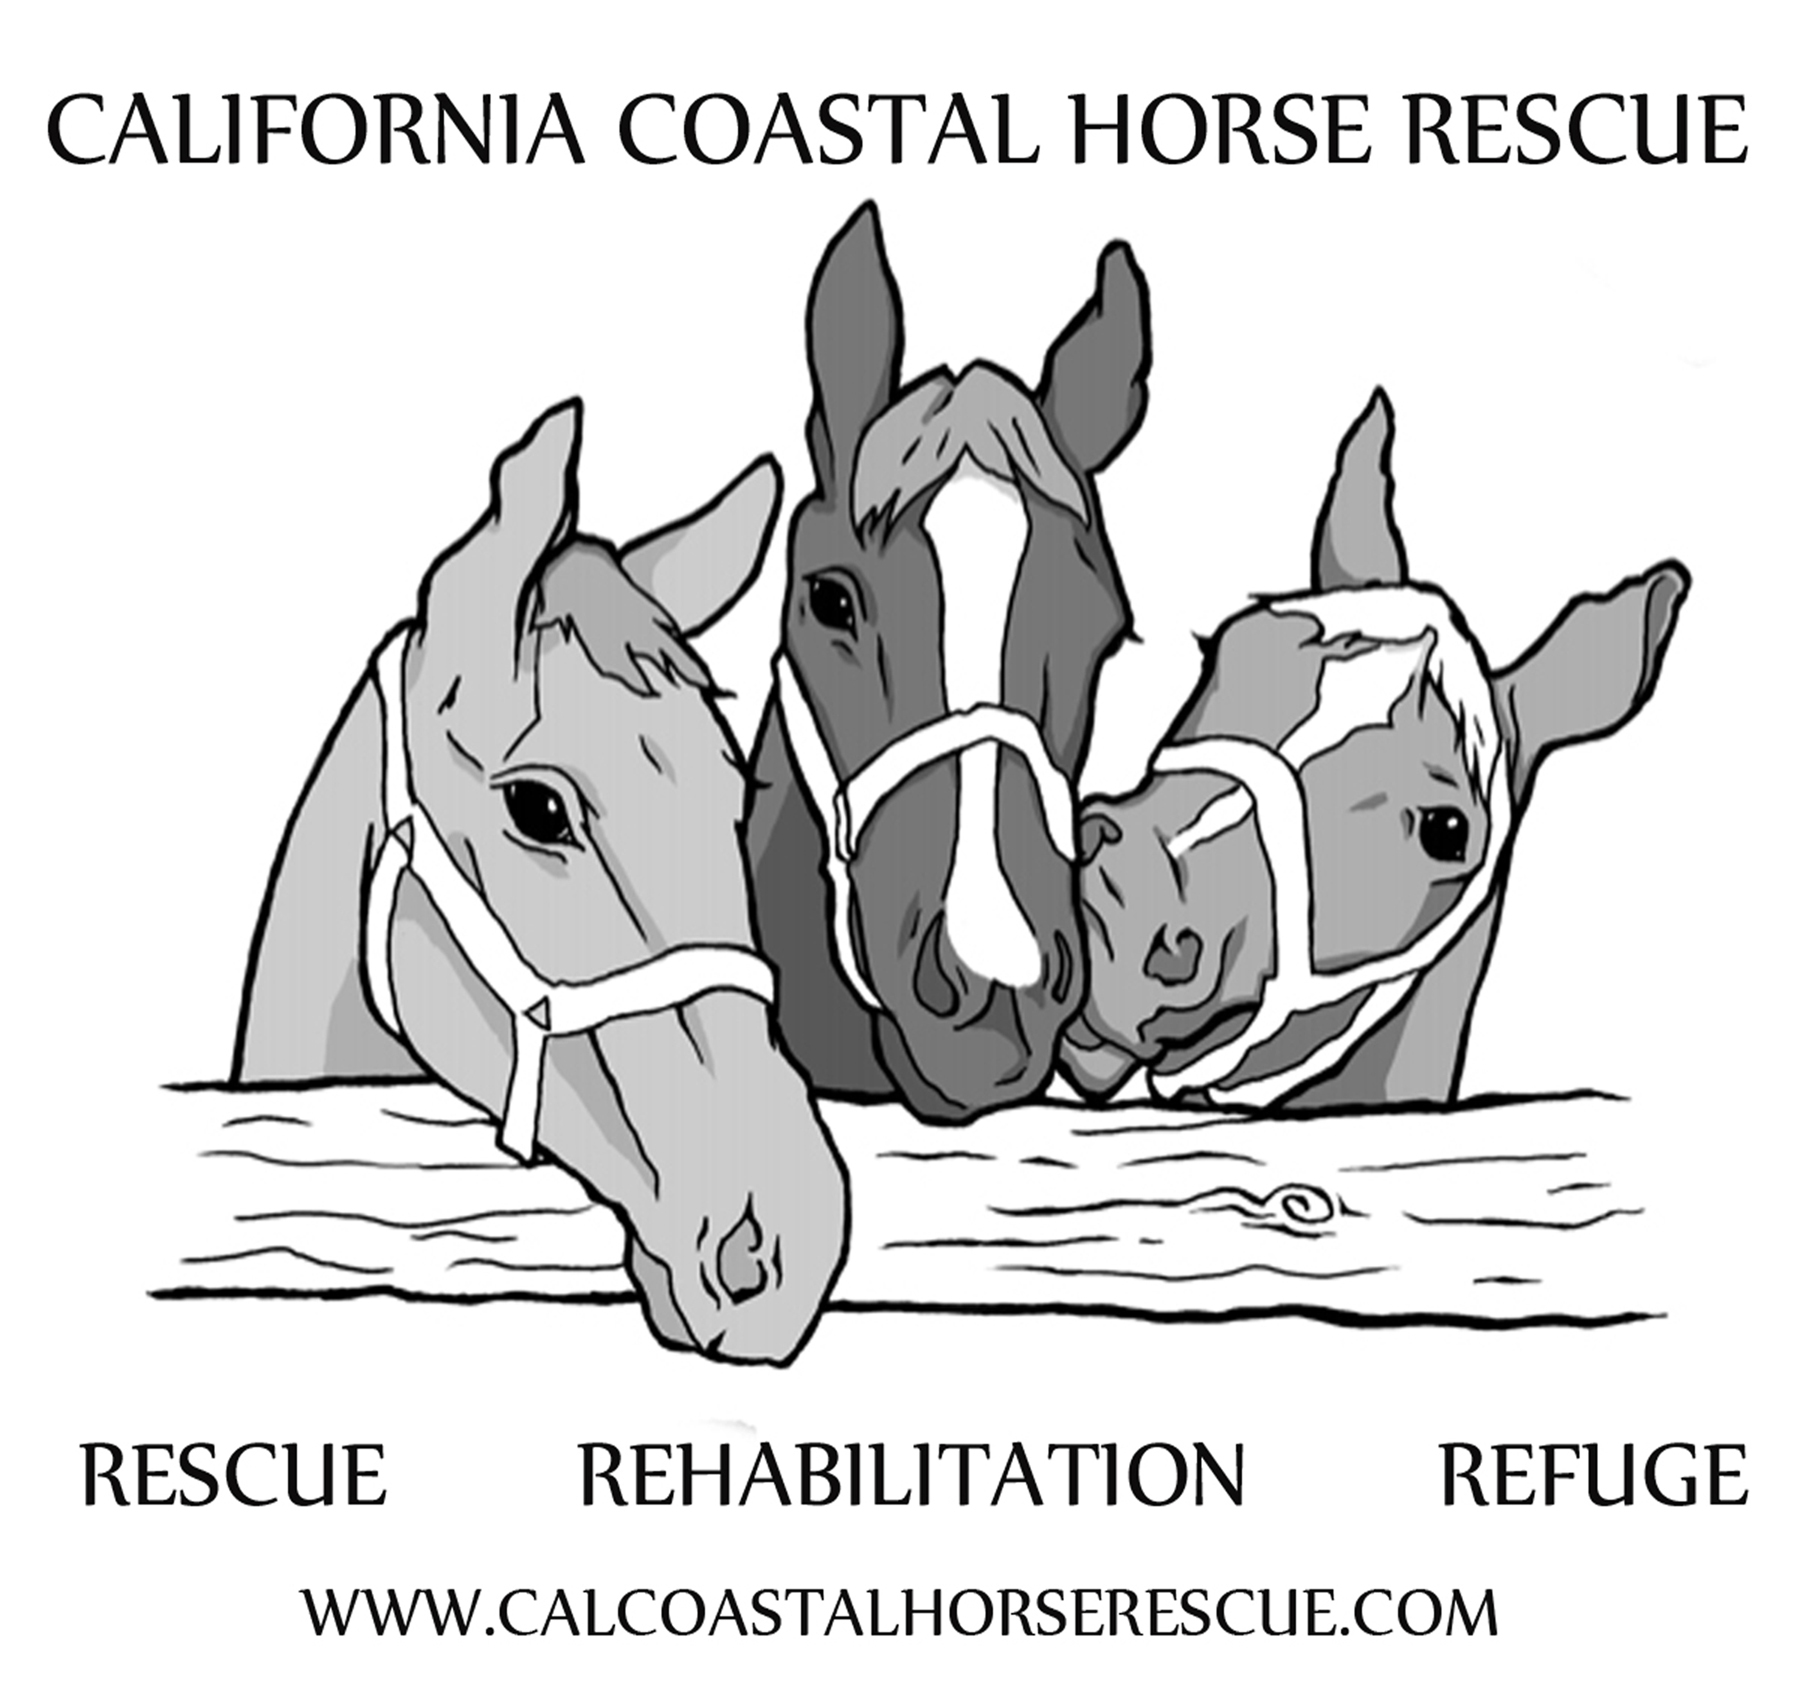 California Coastal Horse Rescue